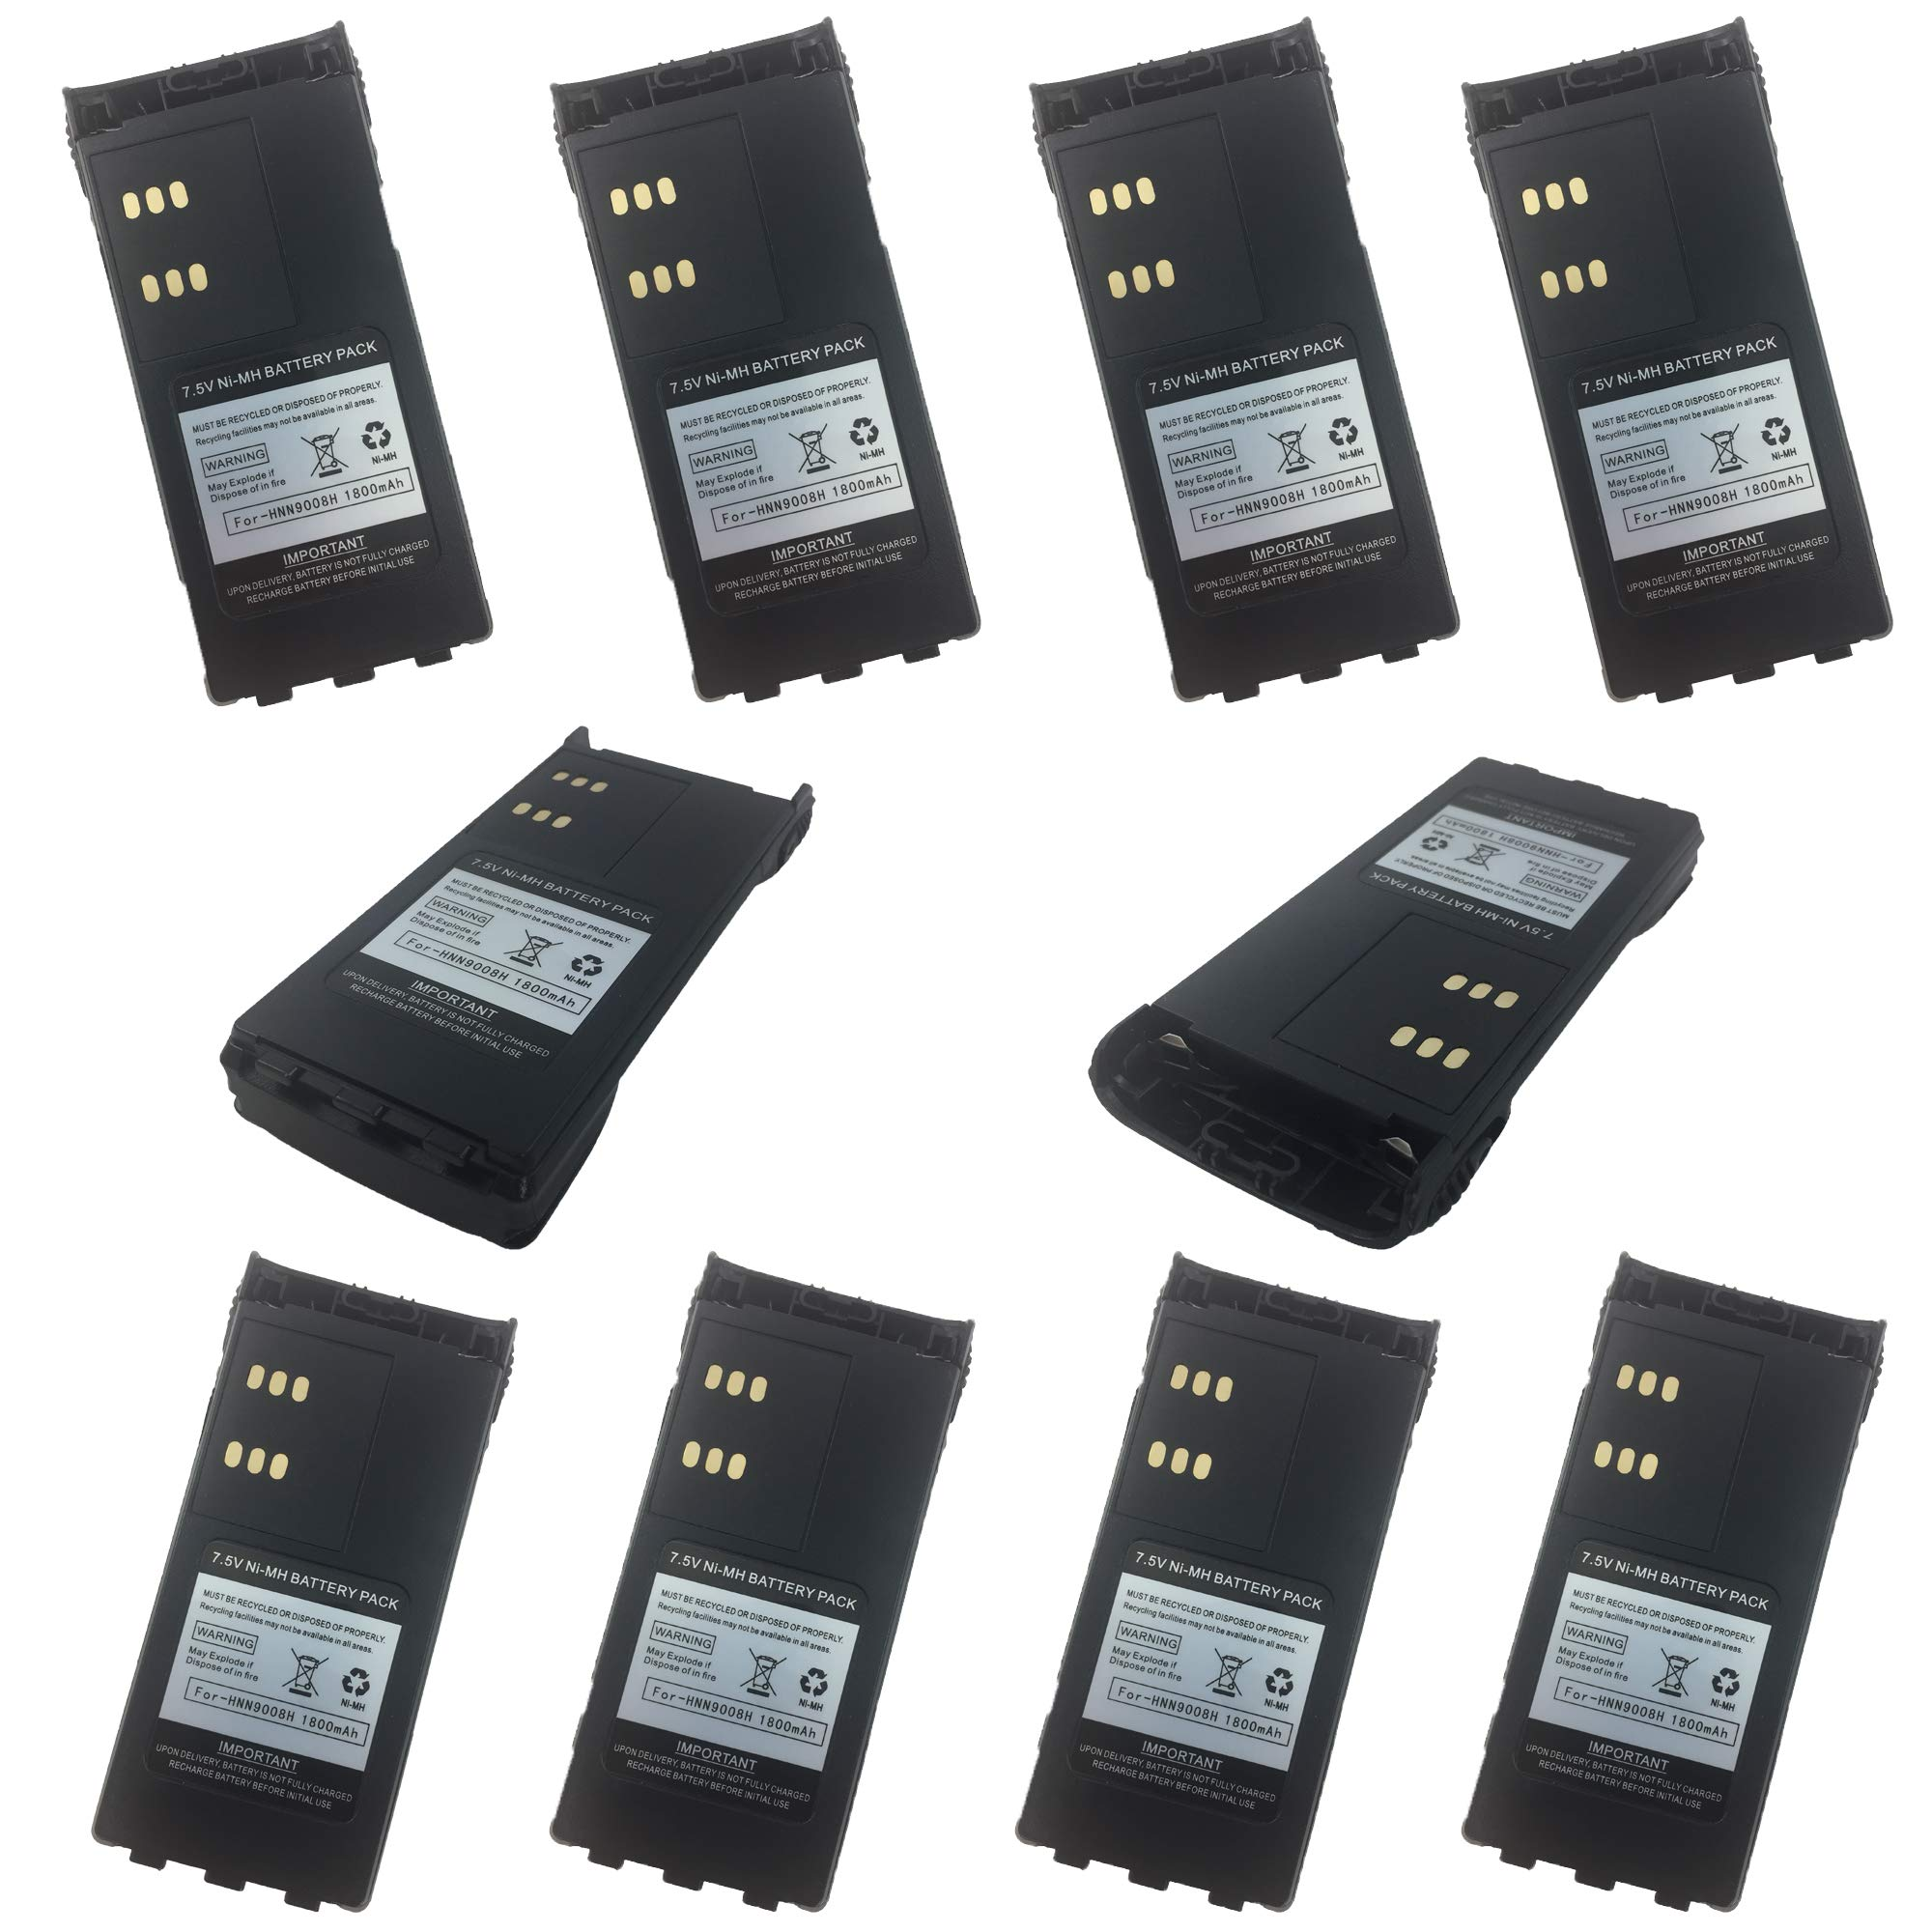 ProMaxPower HNN9008 1800mAh Replacement Battery for Motorola GP328 HT1250 PRO5150 HT1550… (10-Pack)